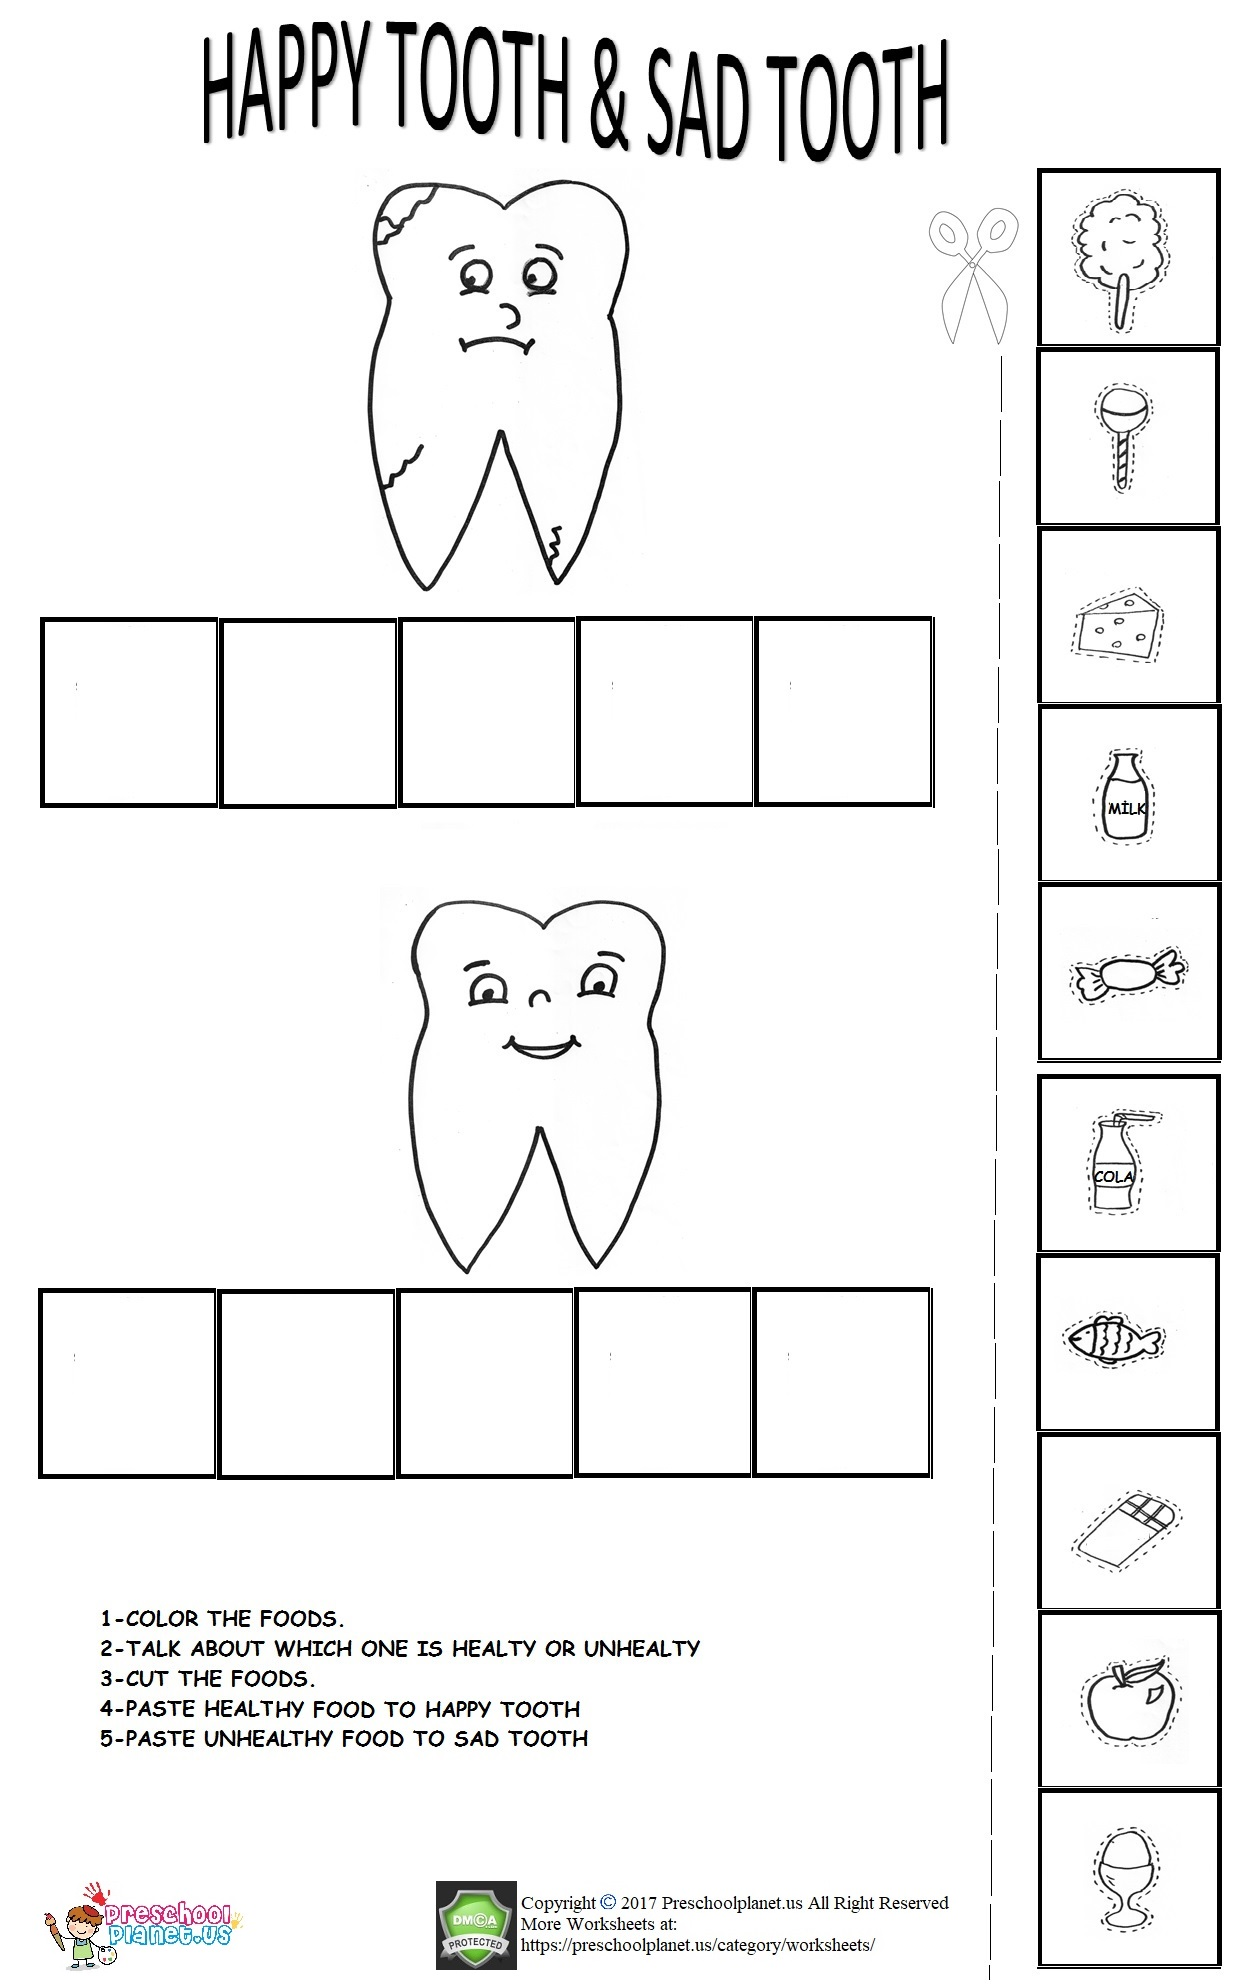 Dental Health Worksheet For Kids Preschoolplanet